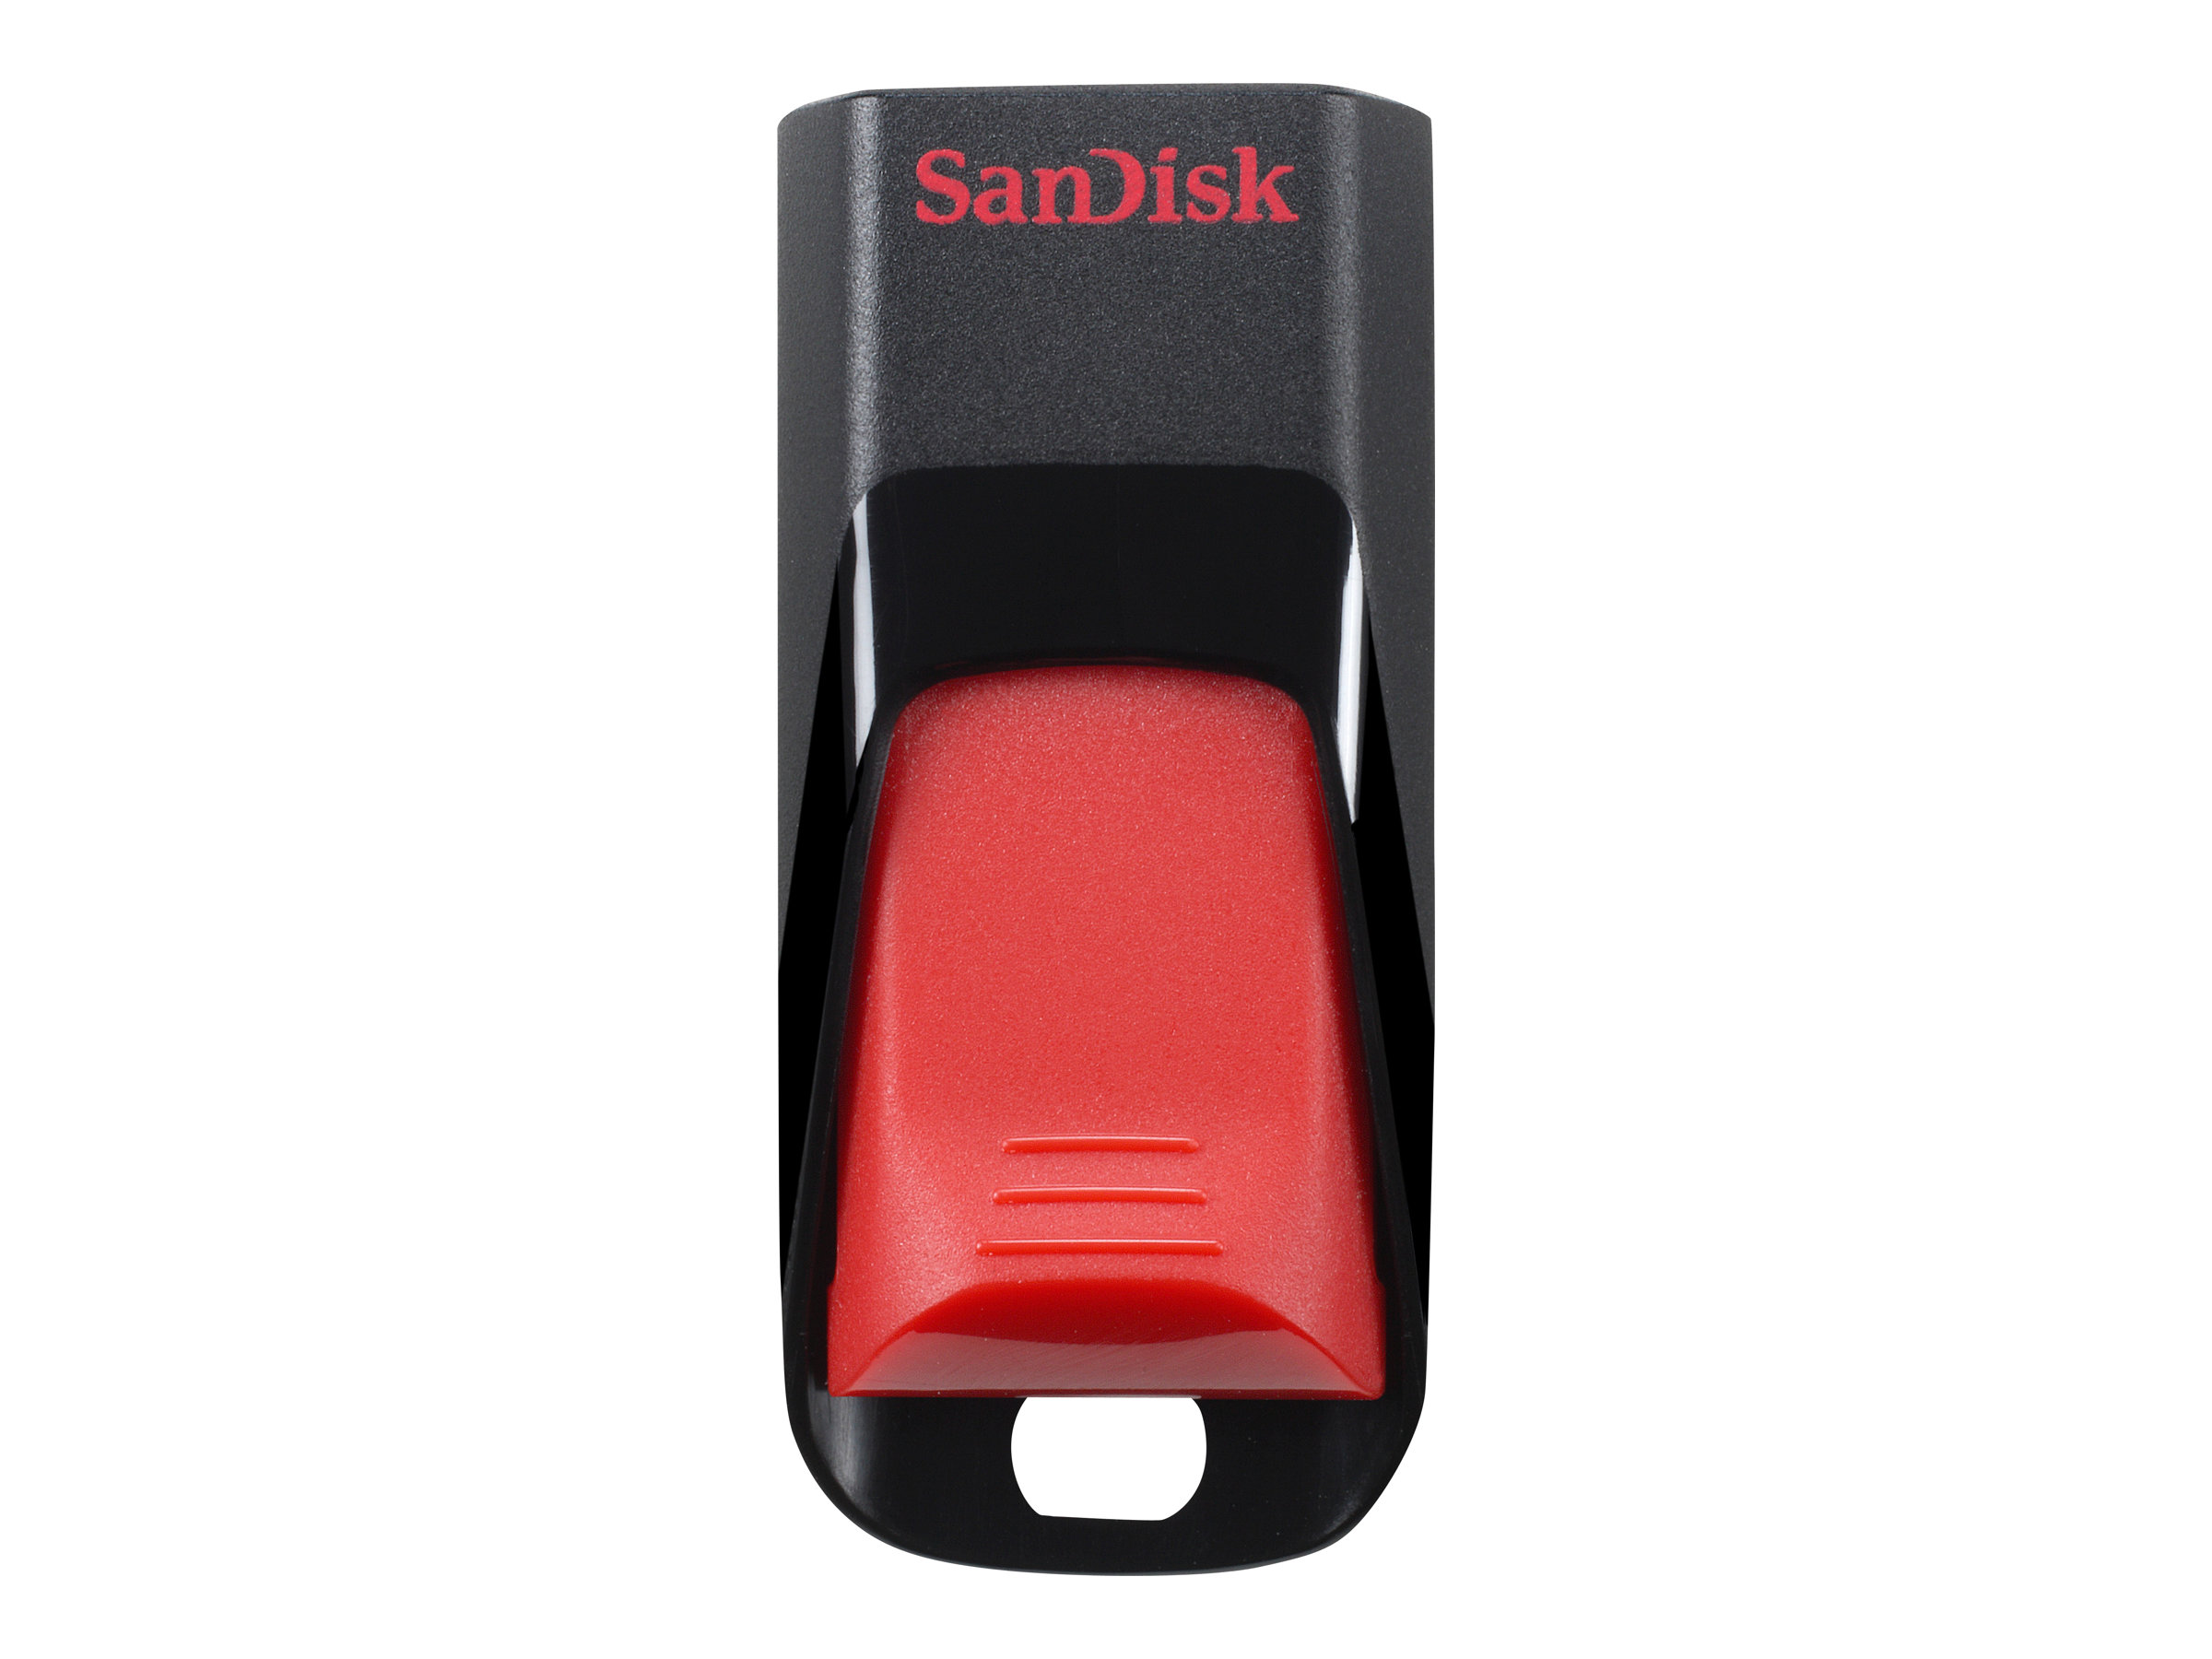 SanDisk Cruzer Edge - USB-Flash-Laufwerk - 16 GB - USB 2.0